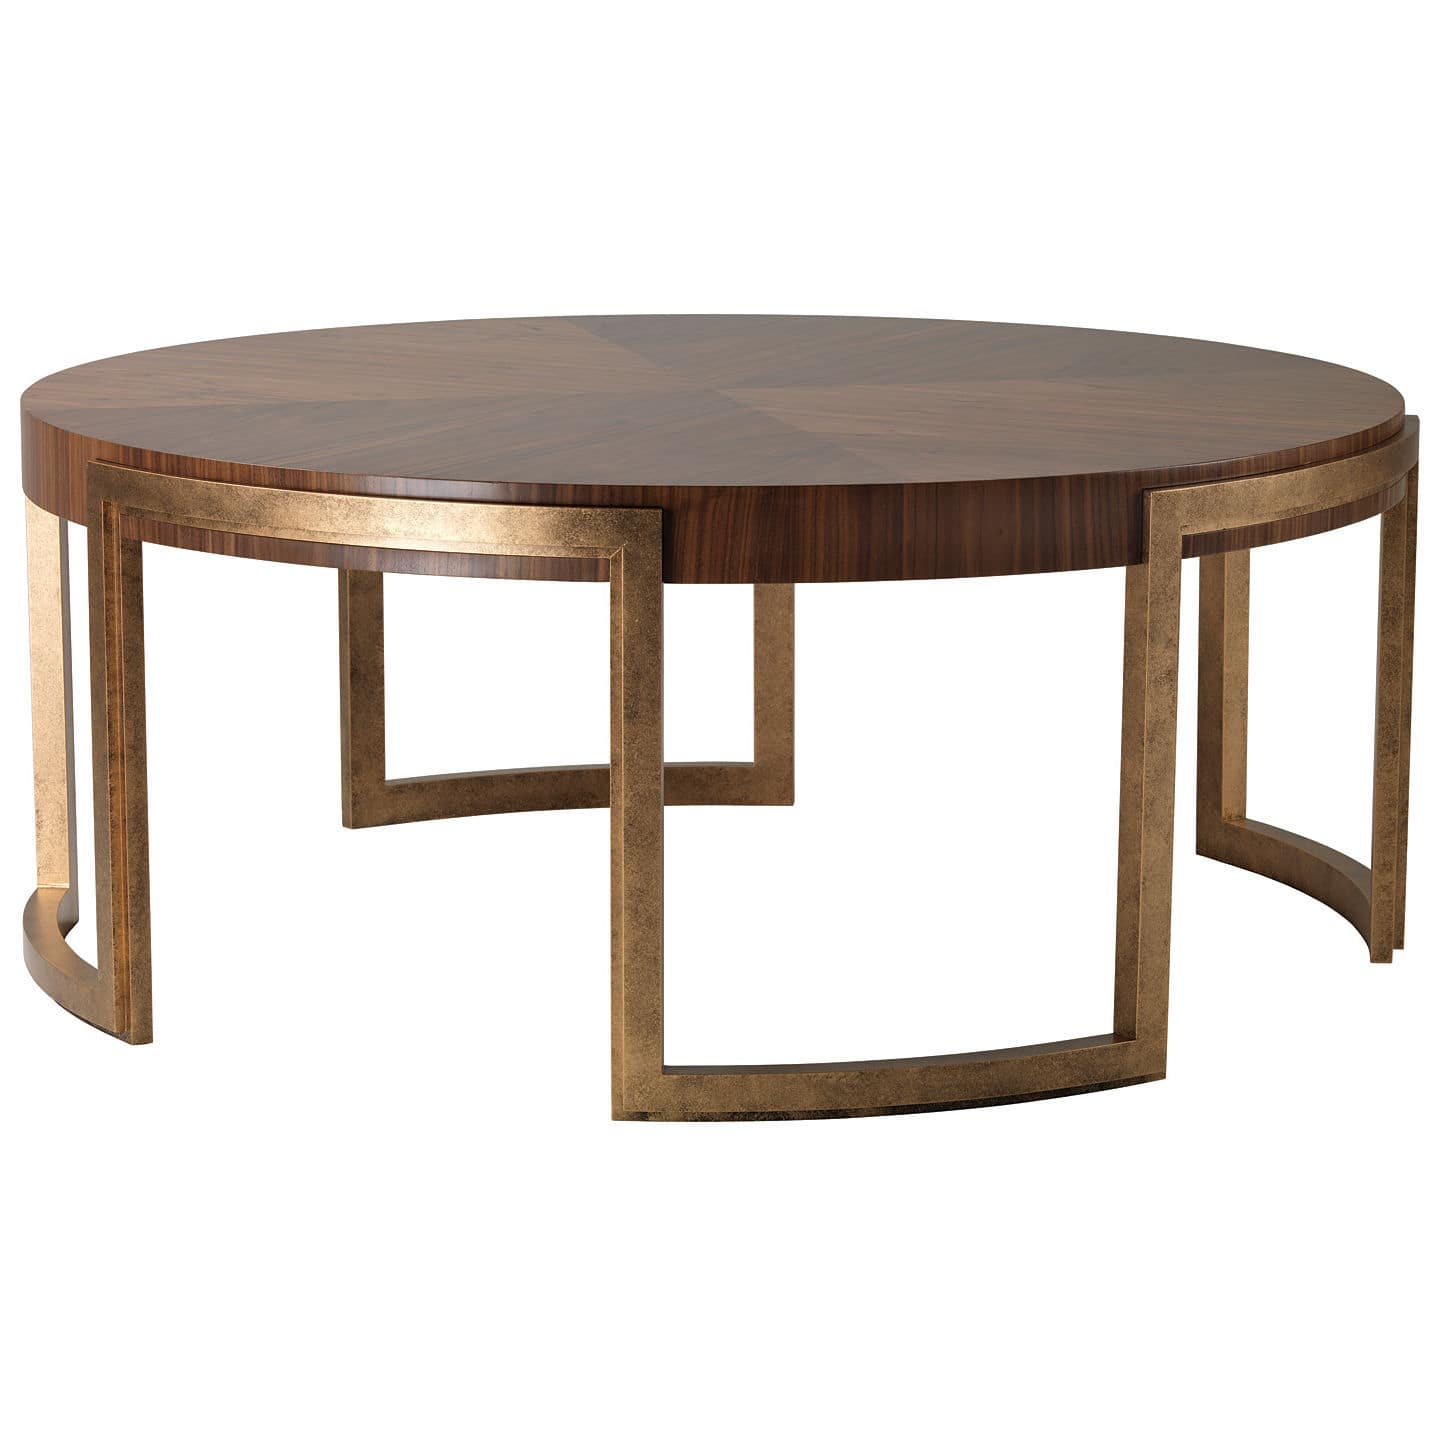 Contemporary Coffee Table Valencia Decorus Walnut Mahogany Round